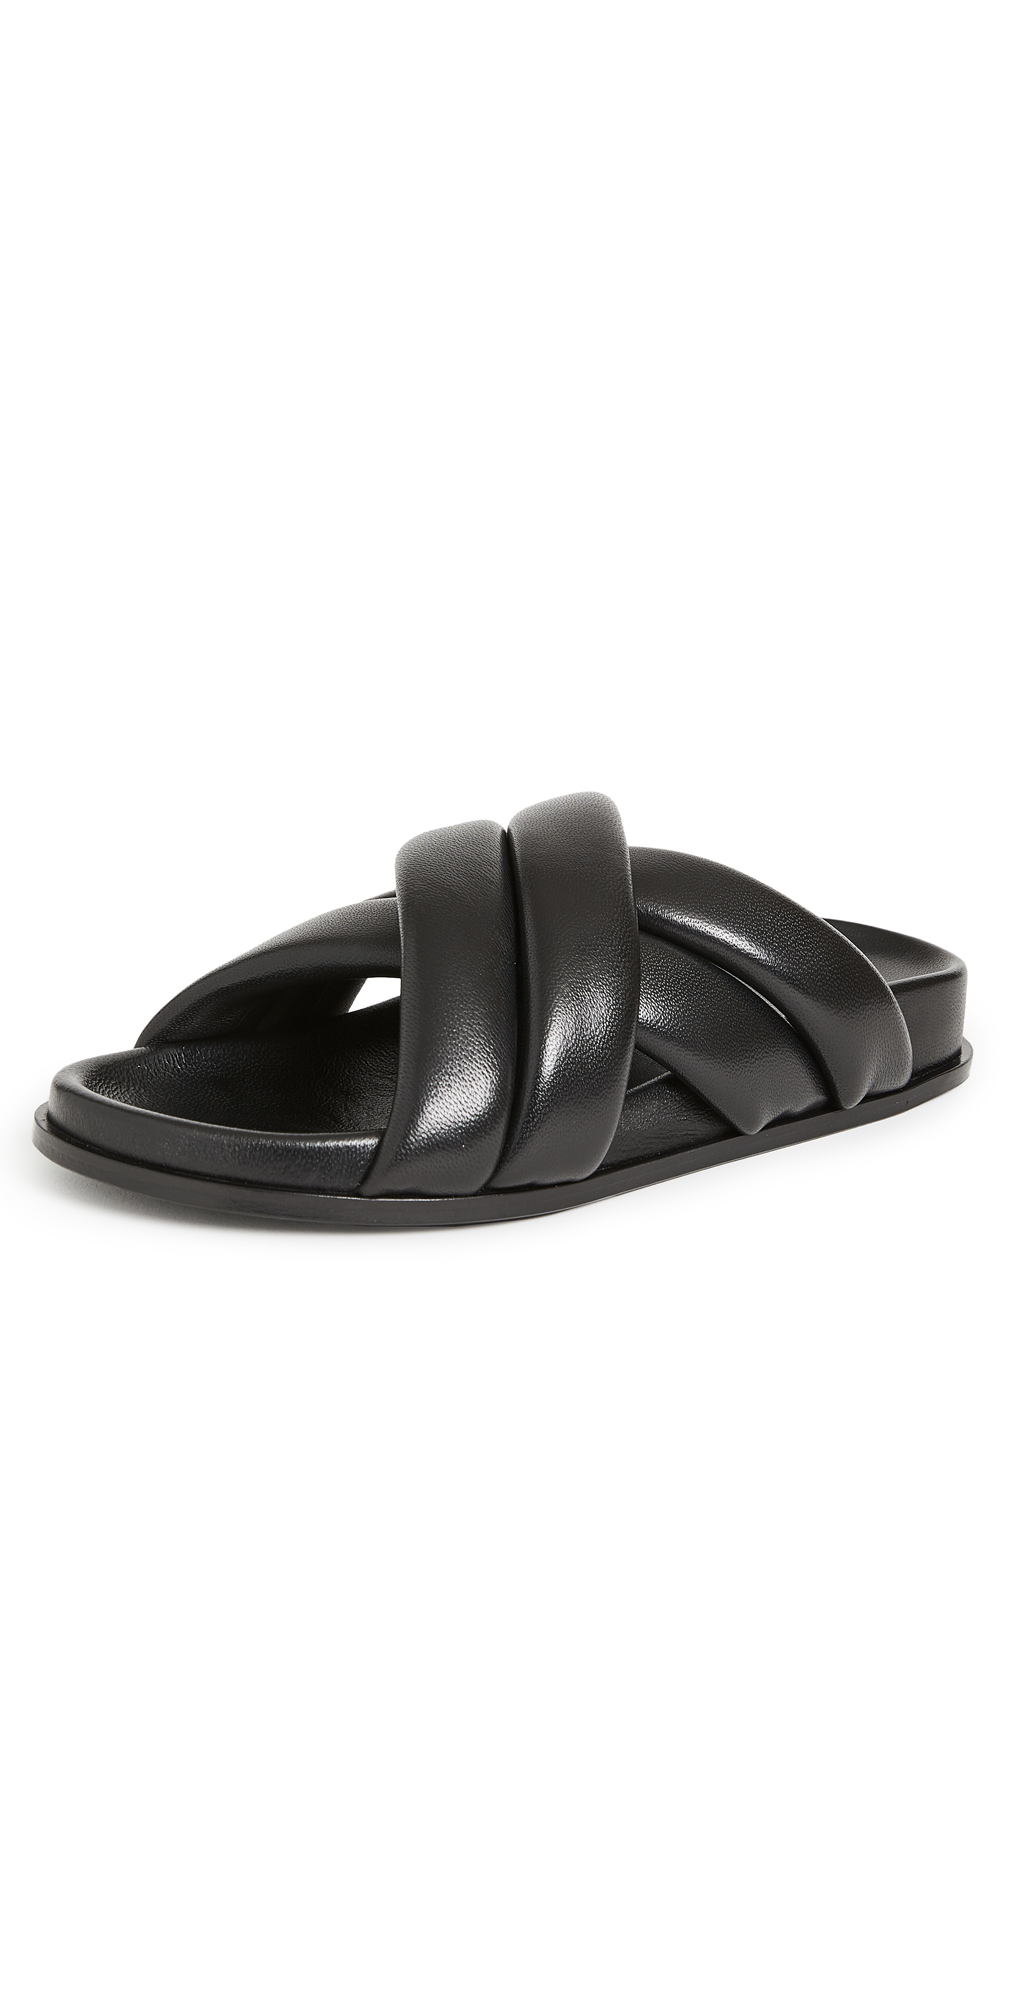 Anine Bing Leathers LIZZIE SLIDES